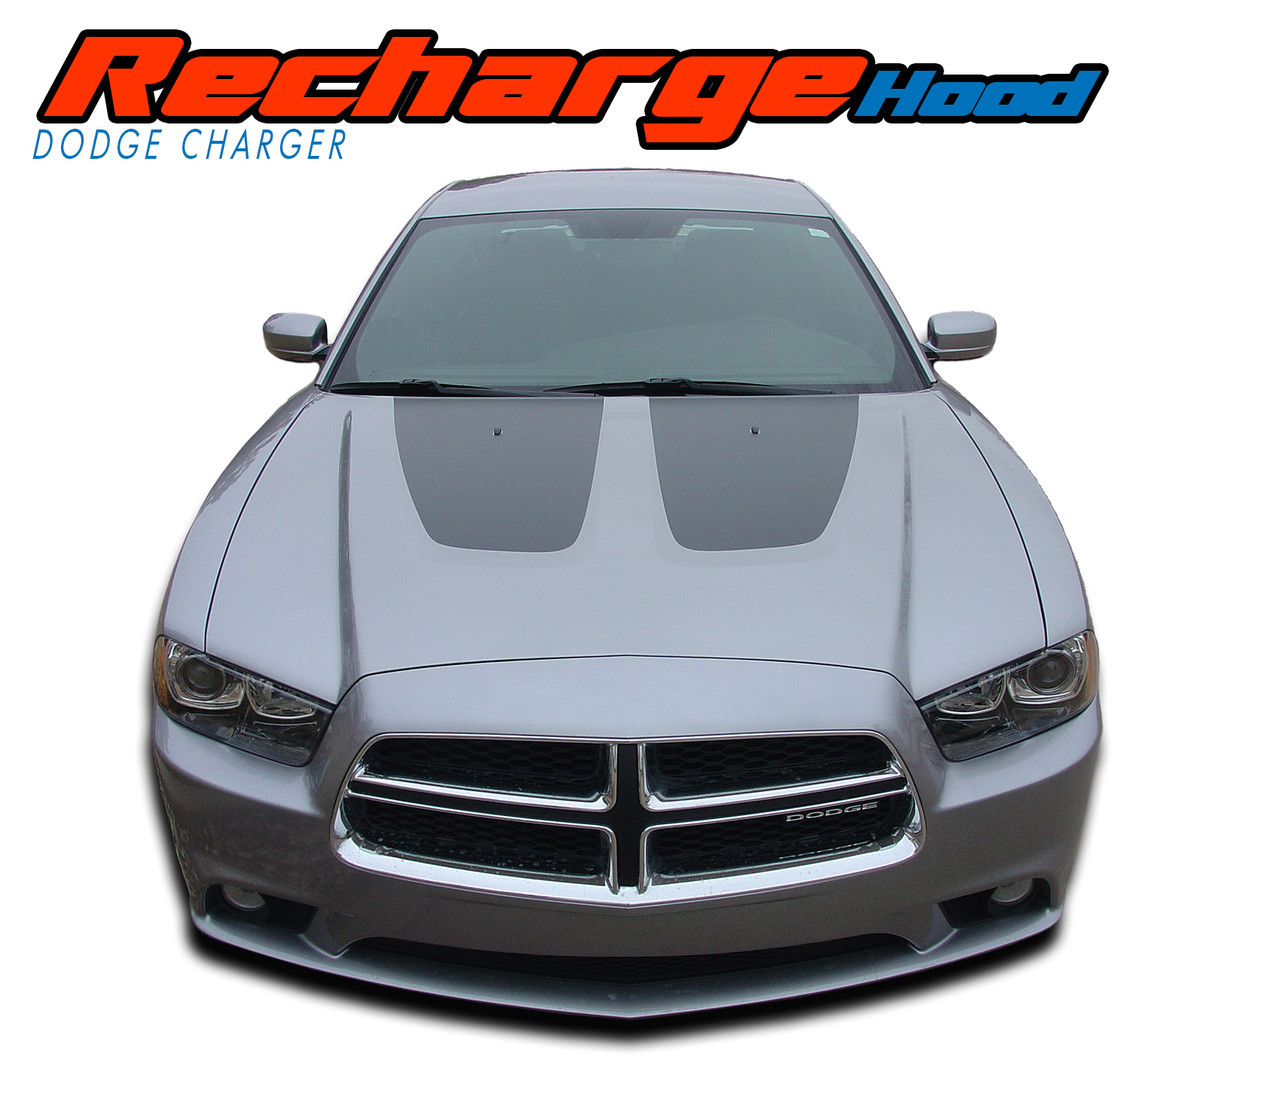 Recharge hood 2011 2012 2013 2014 dodge charger split hood decals stripe vinyl graphics kit vgp 1640